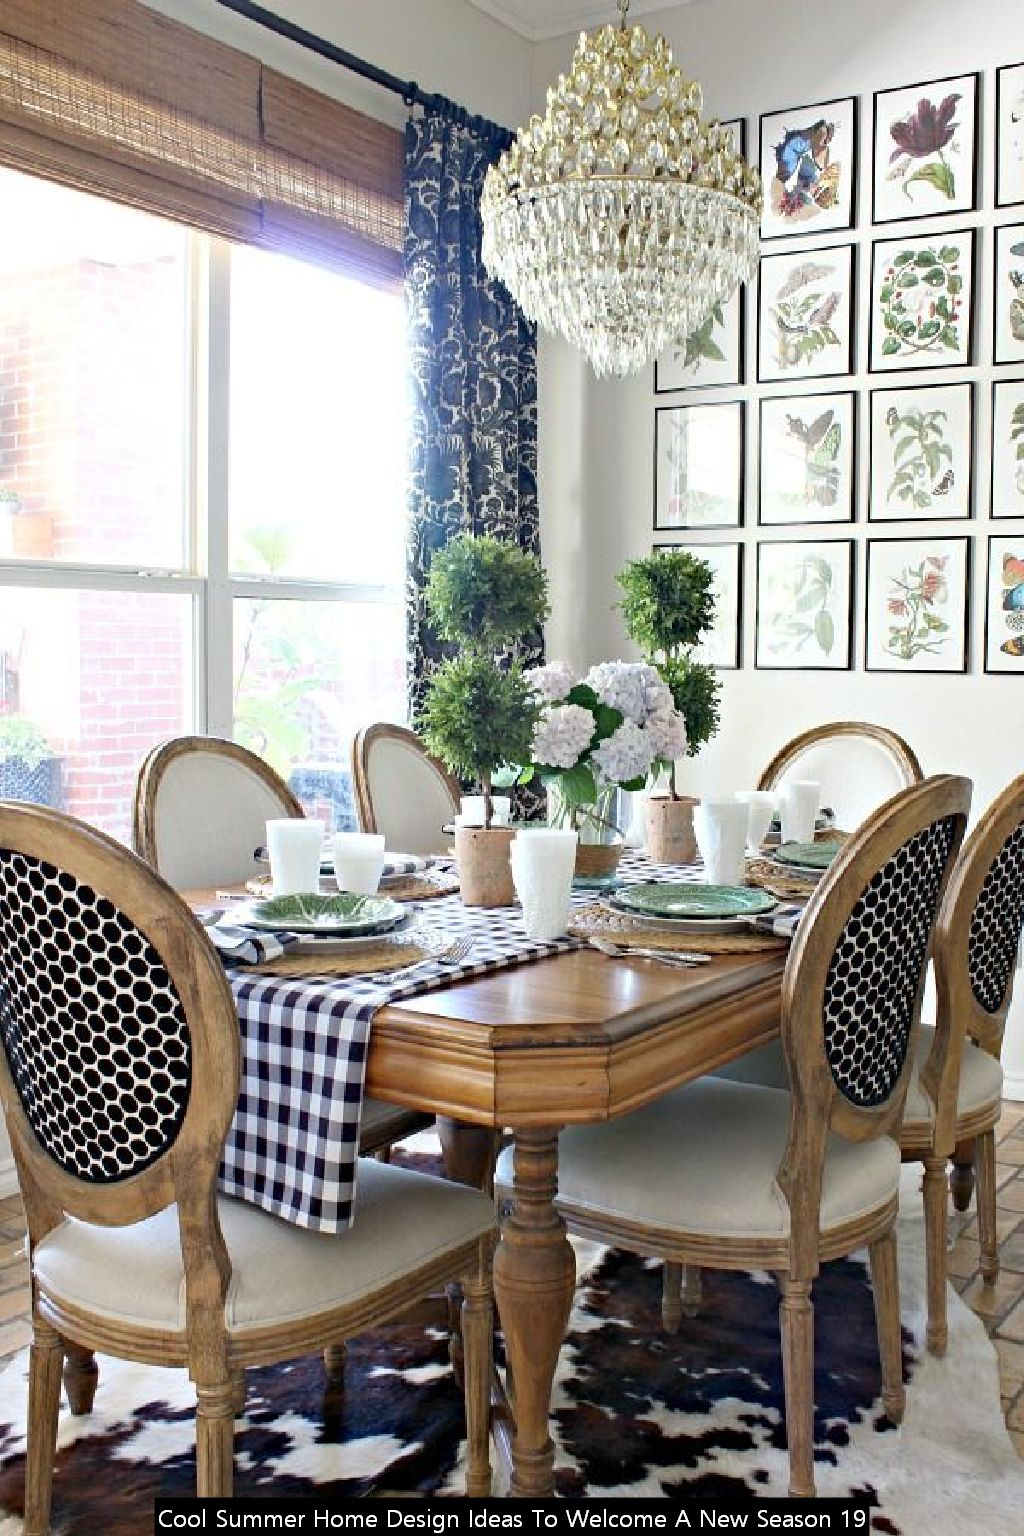 Cool Summer Home Design Ideas To Welcome A New Season 19